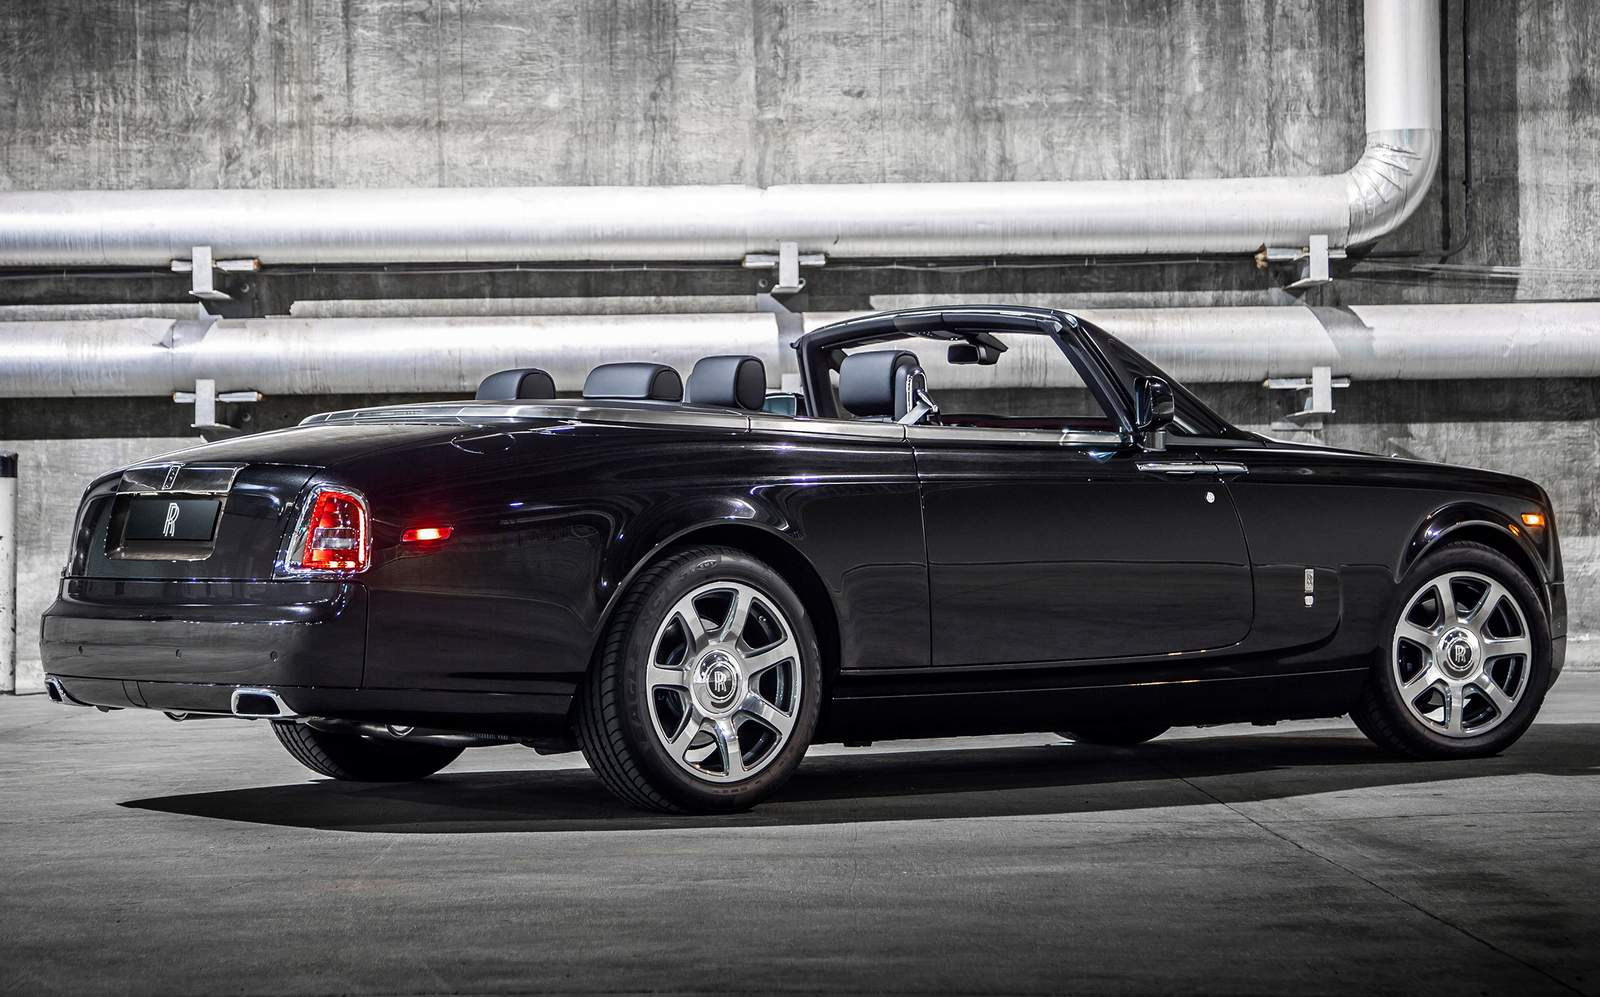 Rolls Royce Phantom Nighthawk